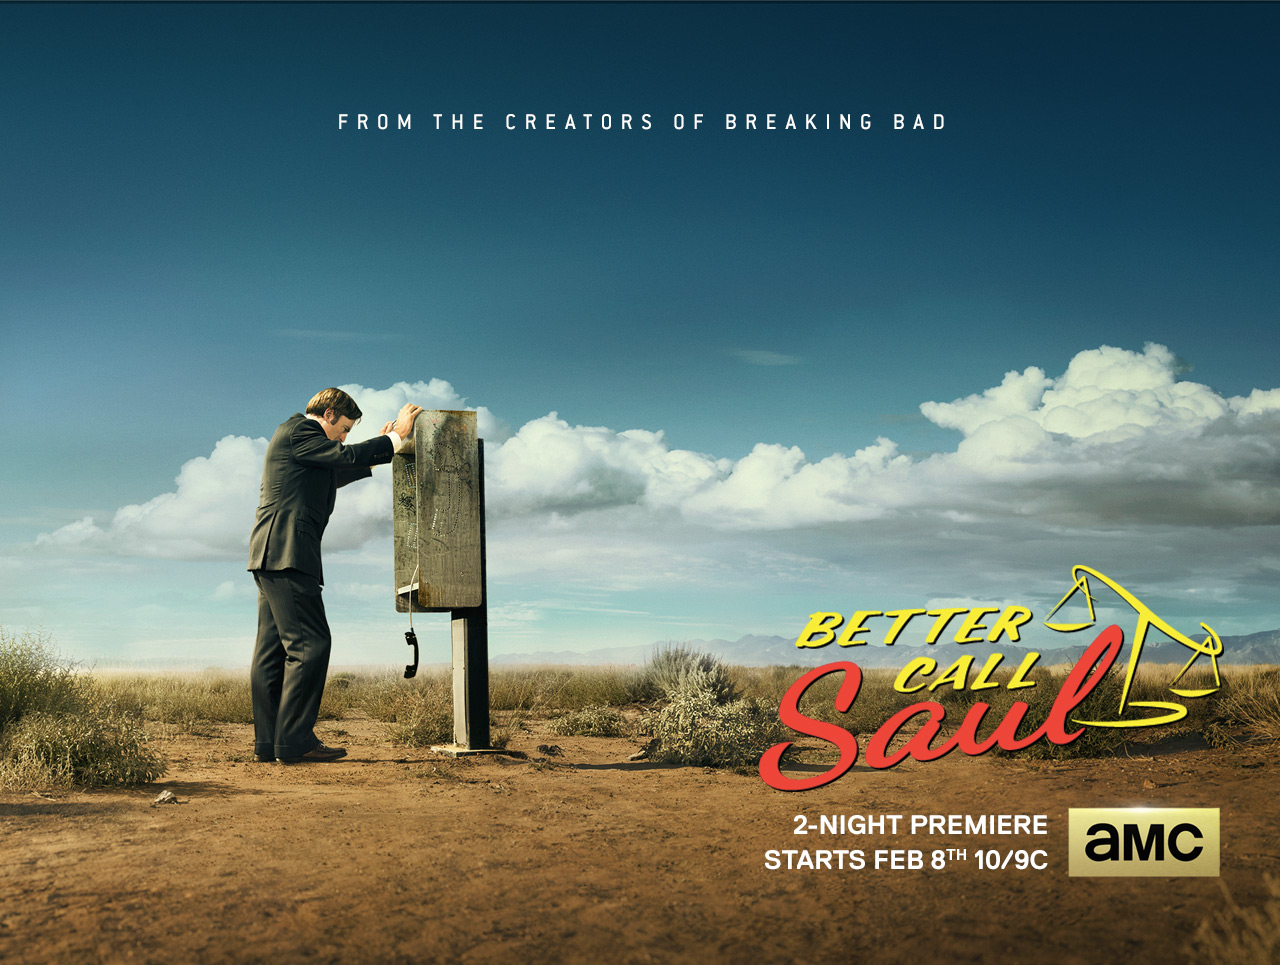 Better Call Saul (Breaking Bad's Spin Off) TV Show Better-call-saul-key-art-1280x965